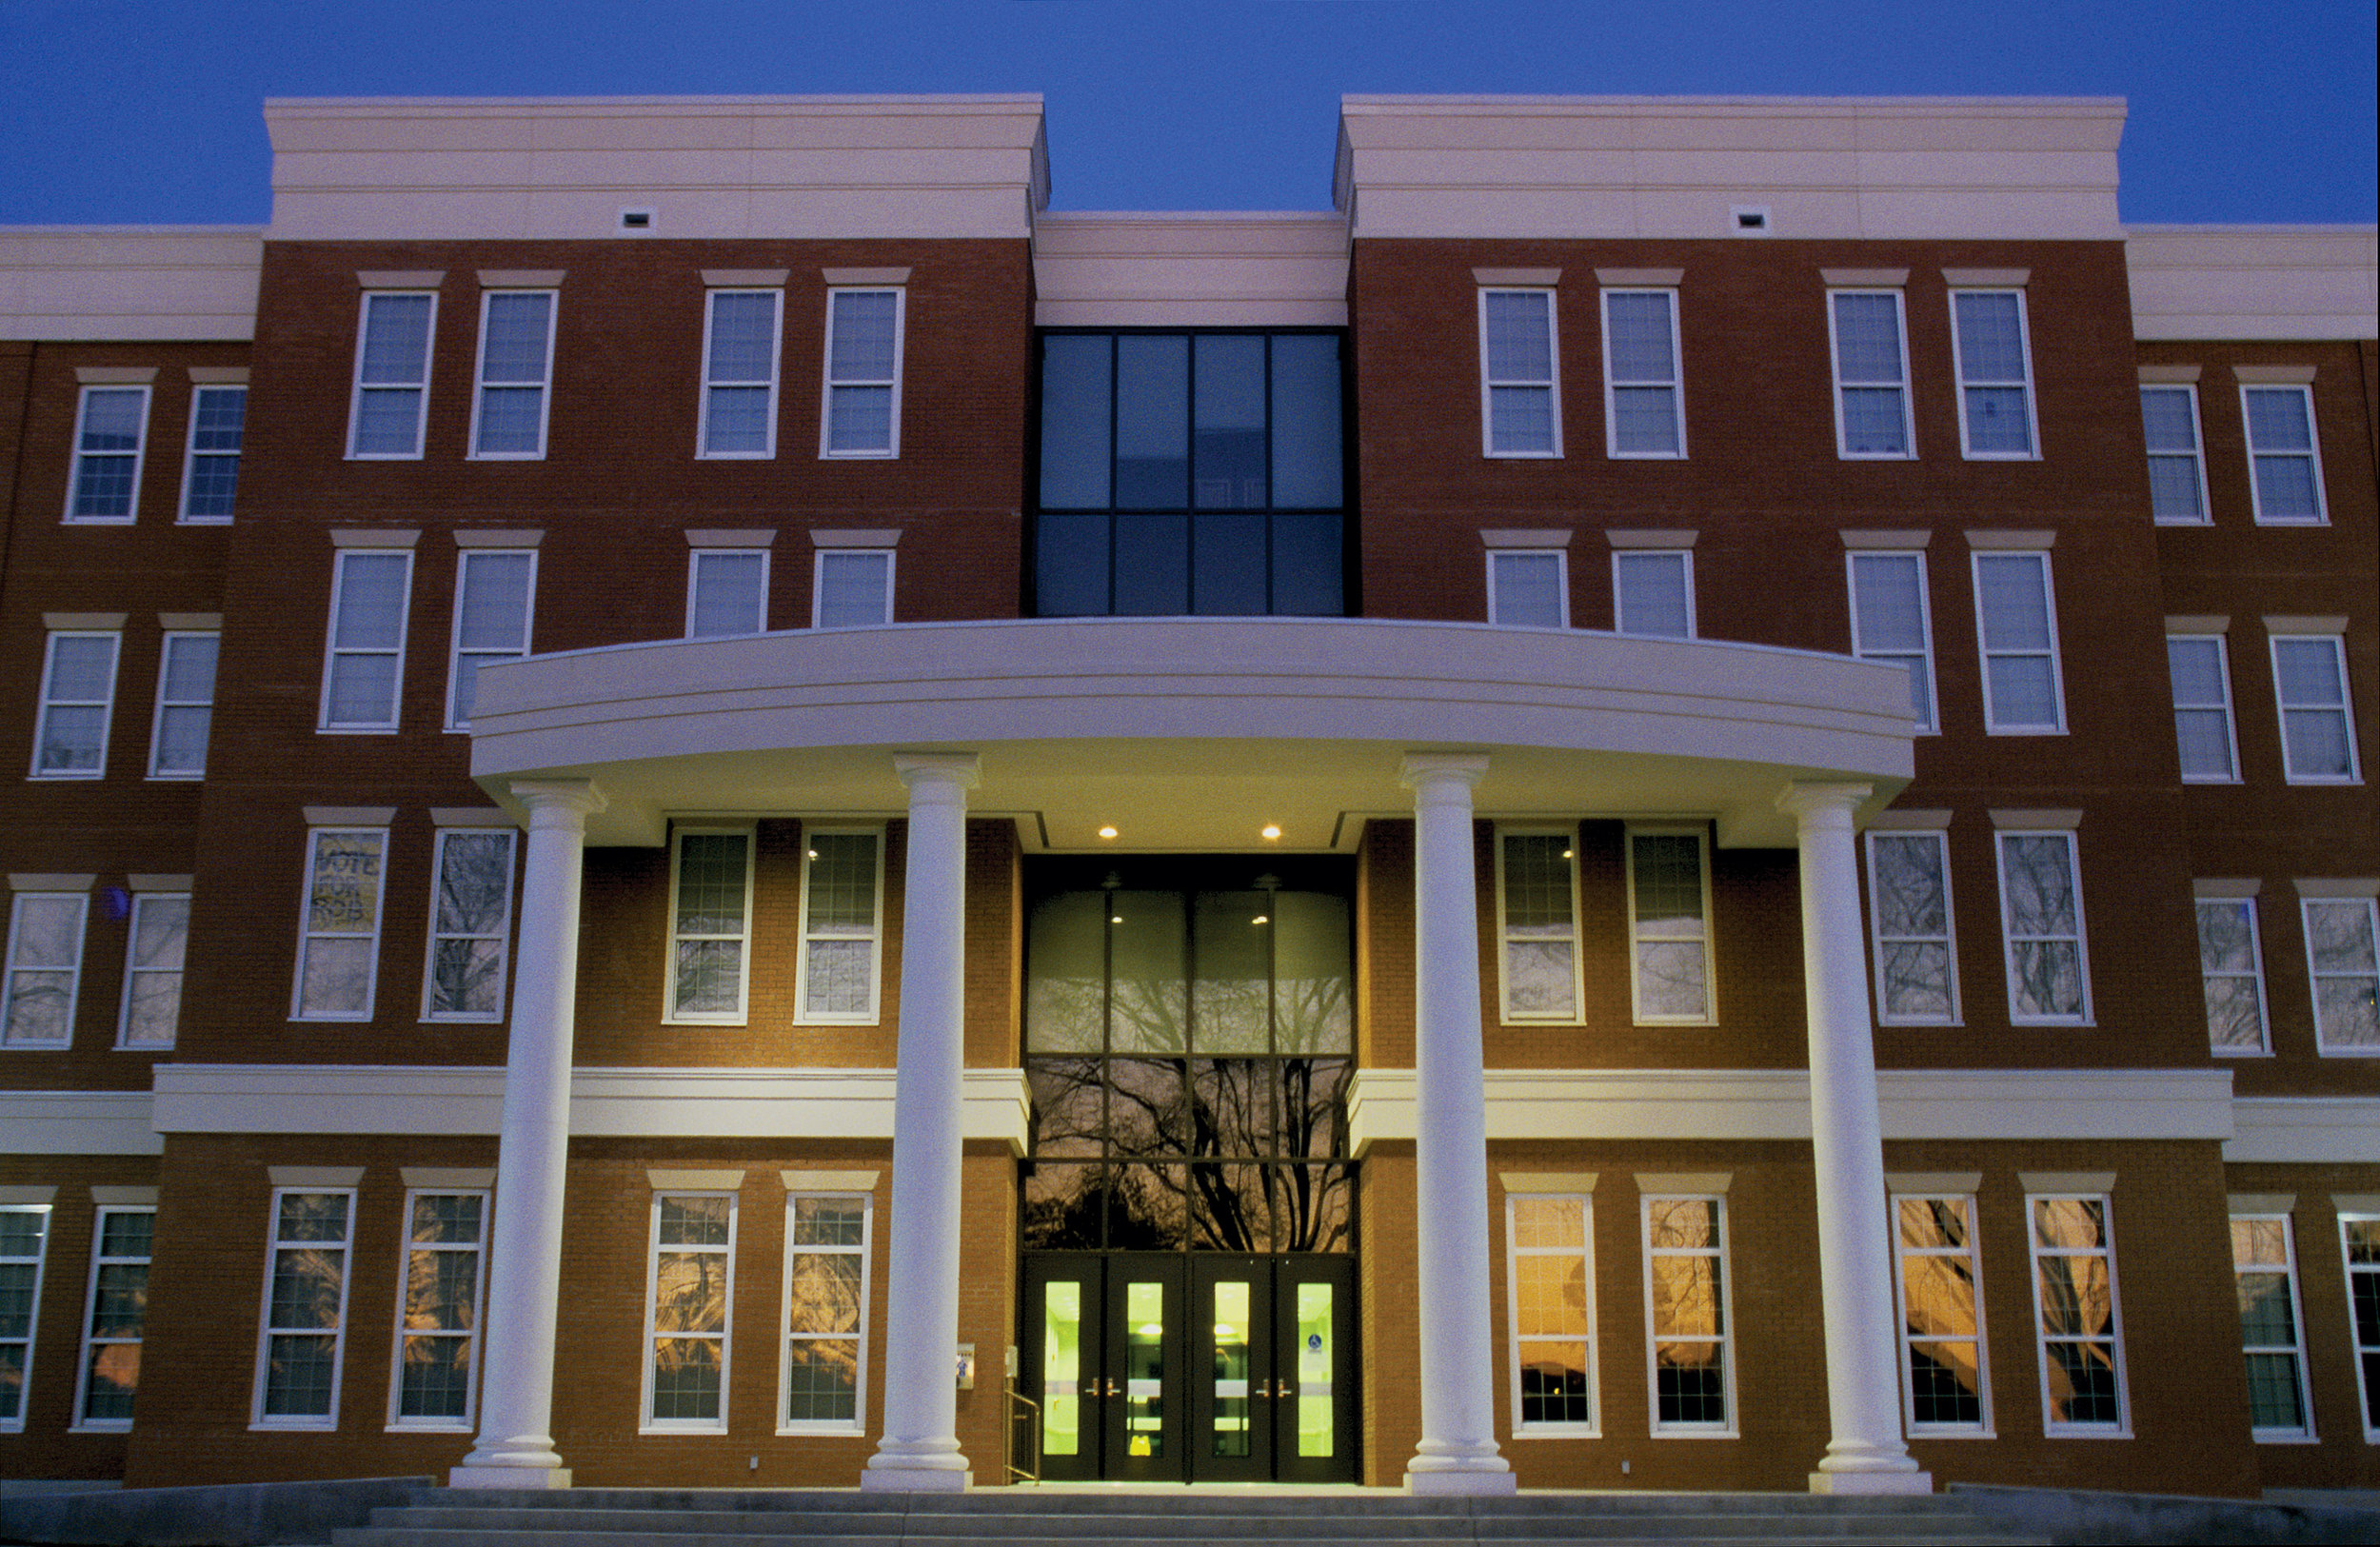 This is McCarty Hall.